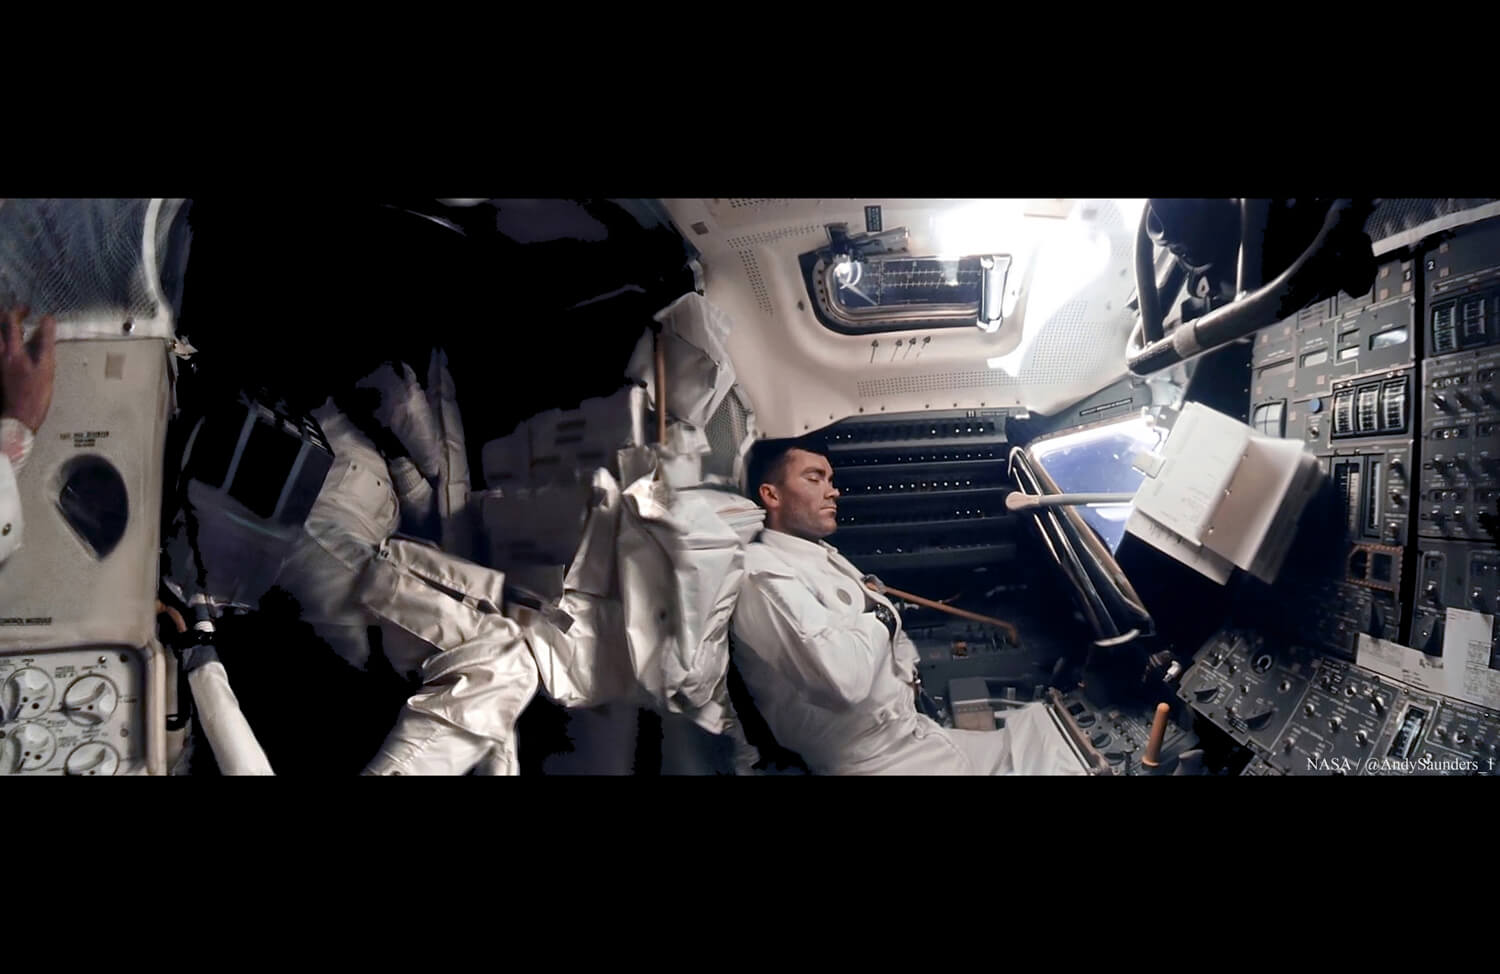 A panorama consisting of over 1,000 image samples. Onboard Apollo 13, Commander Jim Lovell (hand, left) watches over his cold, resting crew inside the Lunar Module, Aquarius, which was used as a lifeboat after the catastrophic failure on the way to the Moon in 1970.